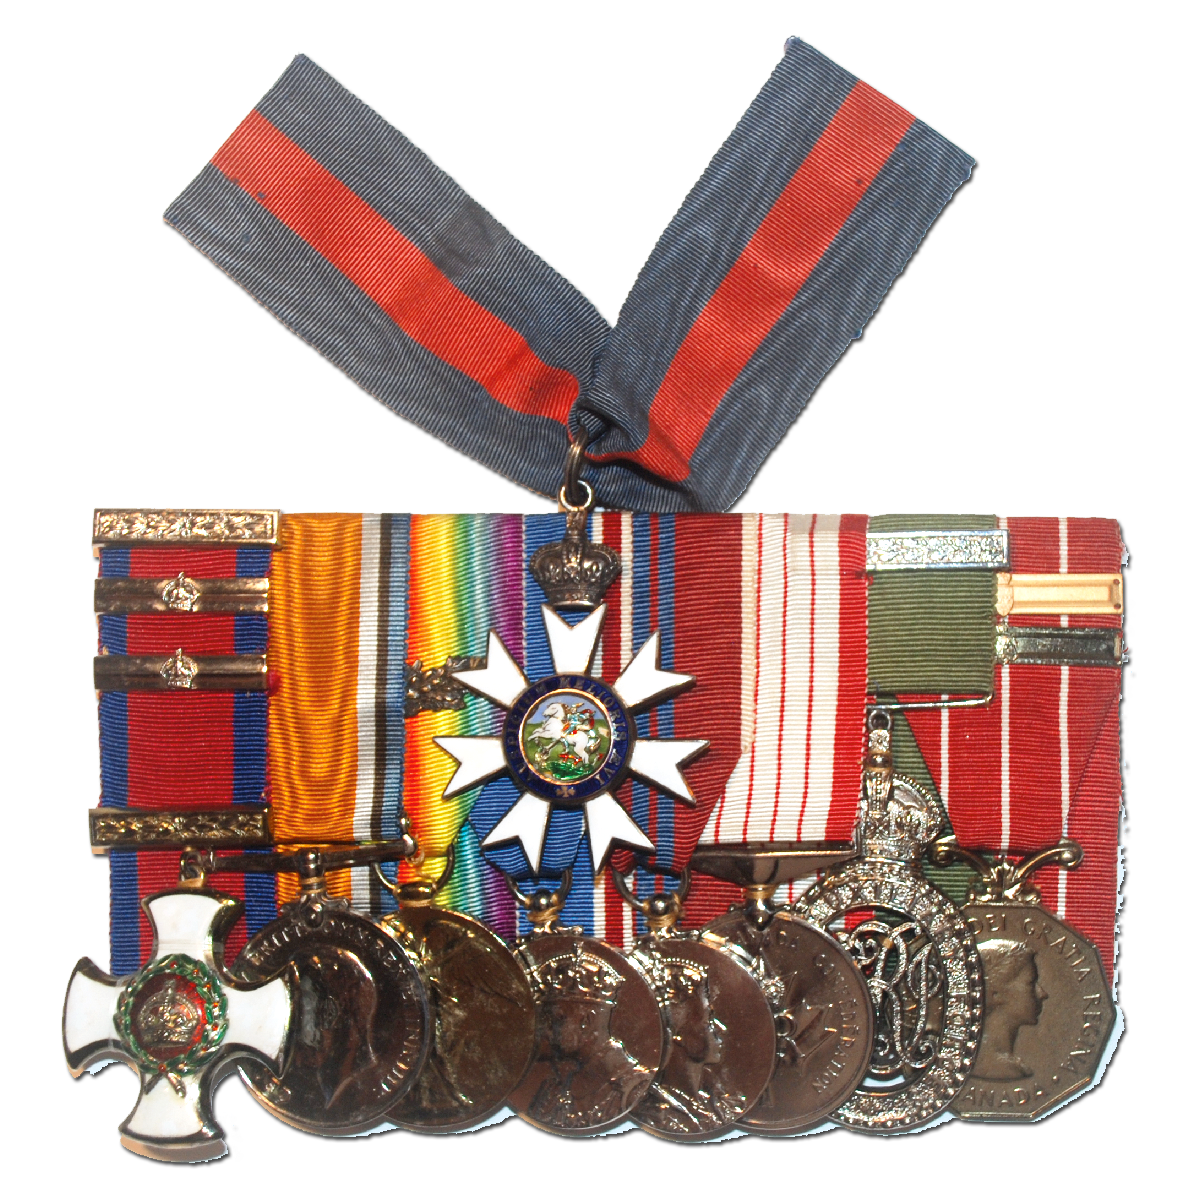 Medal Bar (from left to right): DSO (Distinguished Service Order) with two bars, British War Medal, Victory Medal with MID (Mentioned in Despatches) oak leaf, George VI Coronation Medal (1937), Elizabeth II Coronation Medal (1953), Canadian Centennial Medal (1967), VD (Colonial Auxiliary Forces Officer's Decoration), Canadian Forces Decoration with two bars.